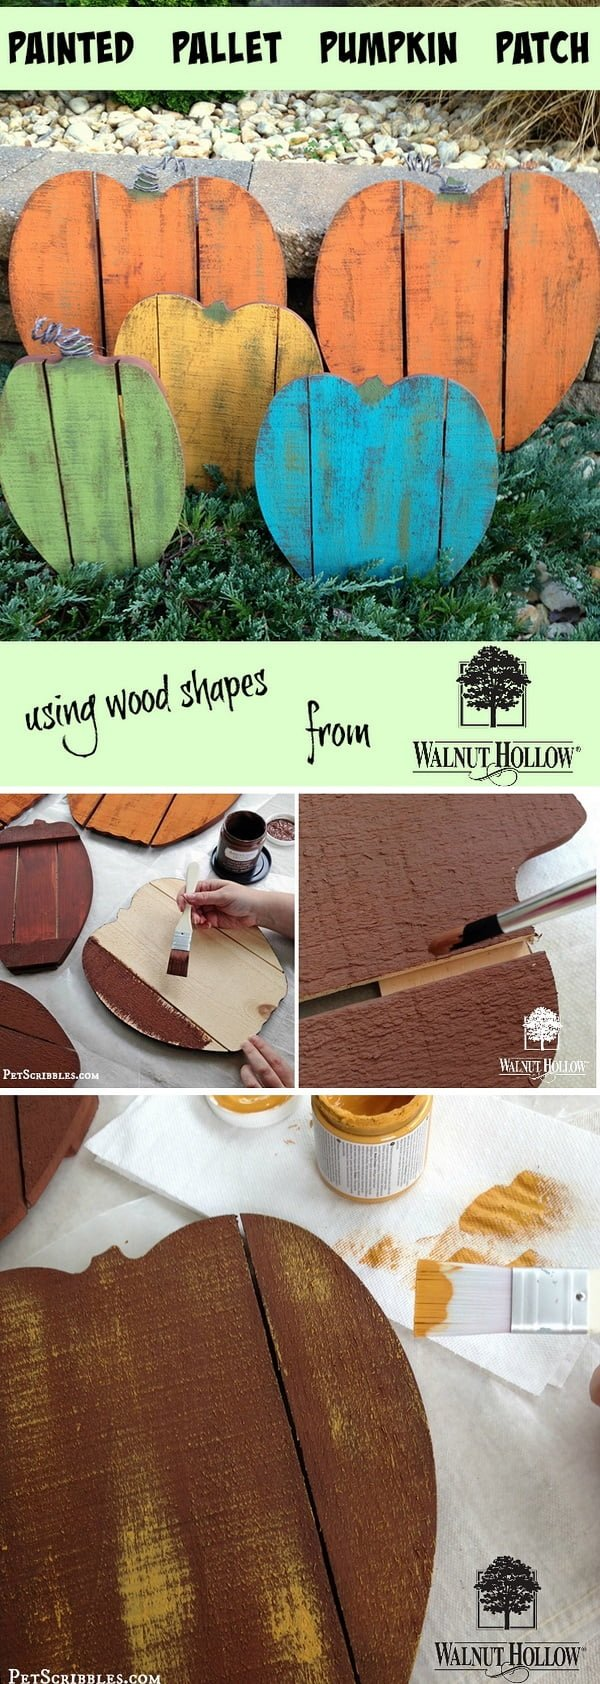 Check out the tutorial on how to make #DIY #rustic painted wood pallet pumpkins #woodworking #homedecor #fall